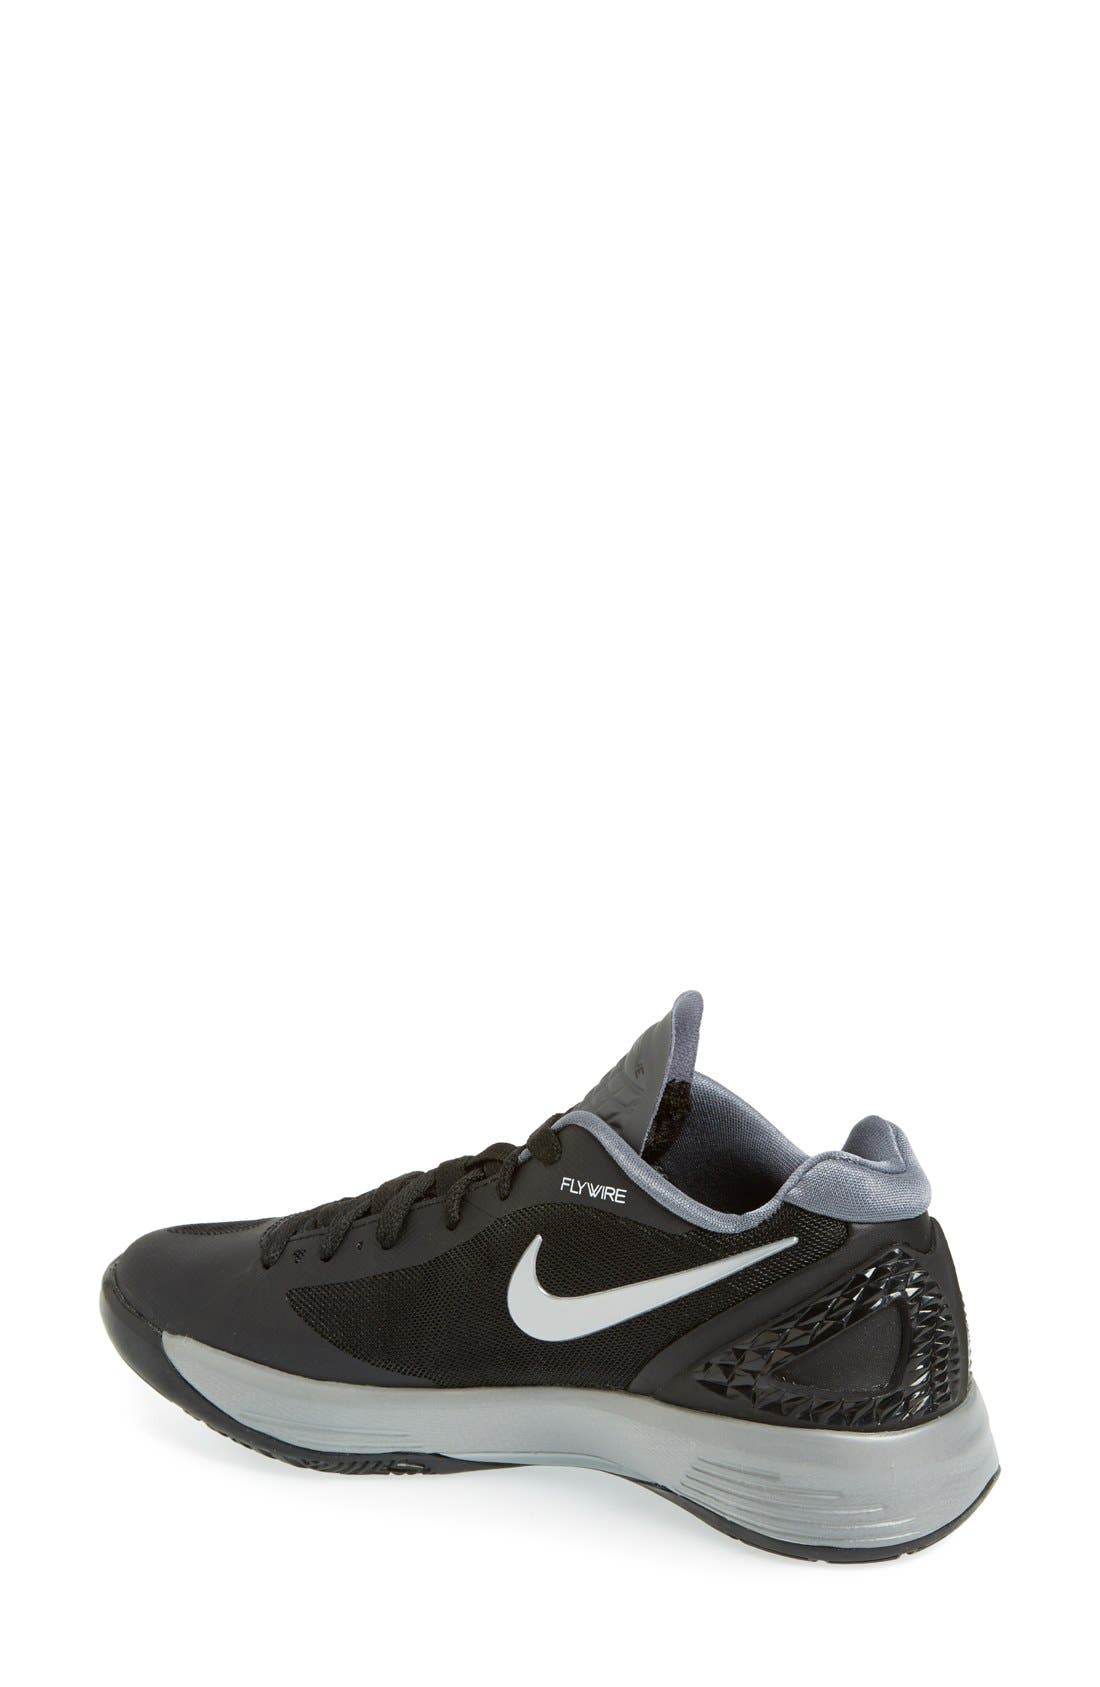 Alternate Image 2  - Nike 'Zoom Hyperspike' Volleyball Shoe (Women)